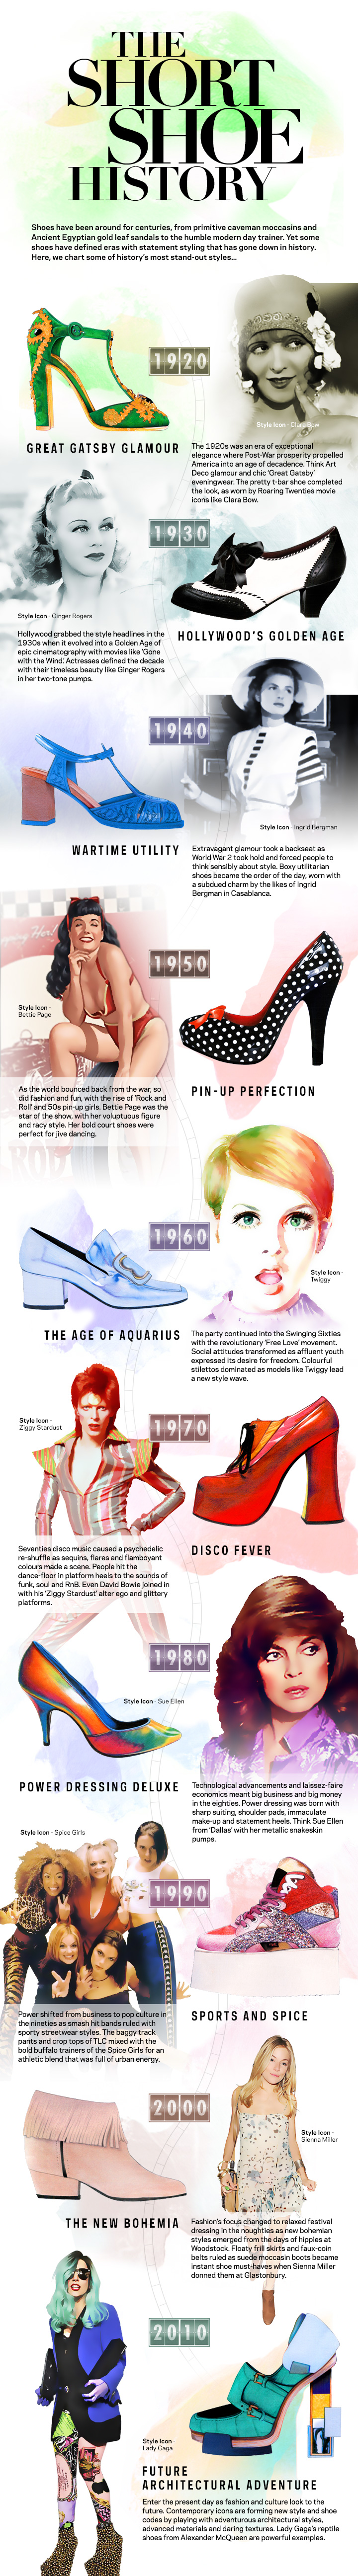 Short Shoe History Graphic